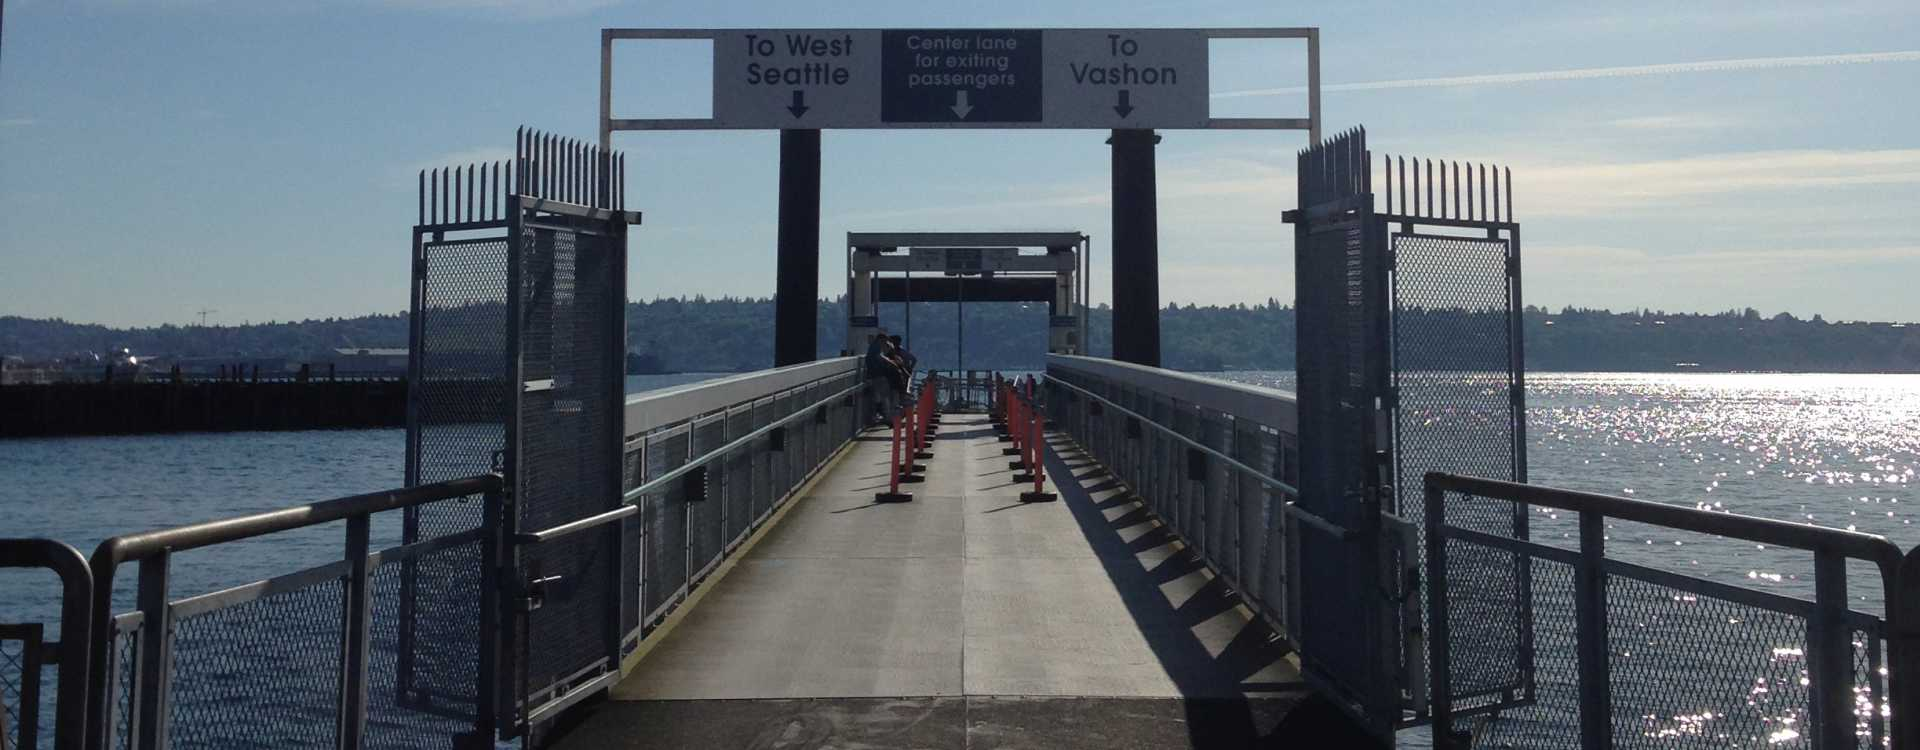 King County Water Taxi - Vashon Island